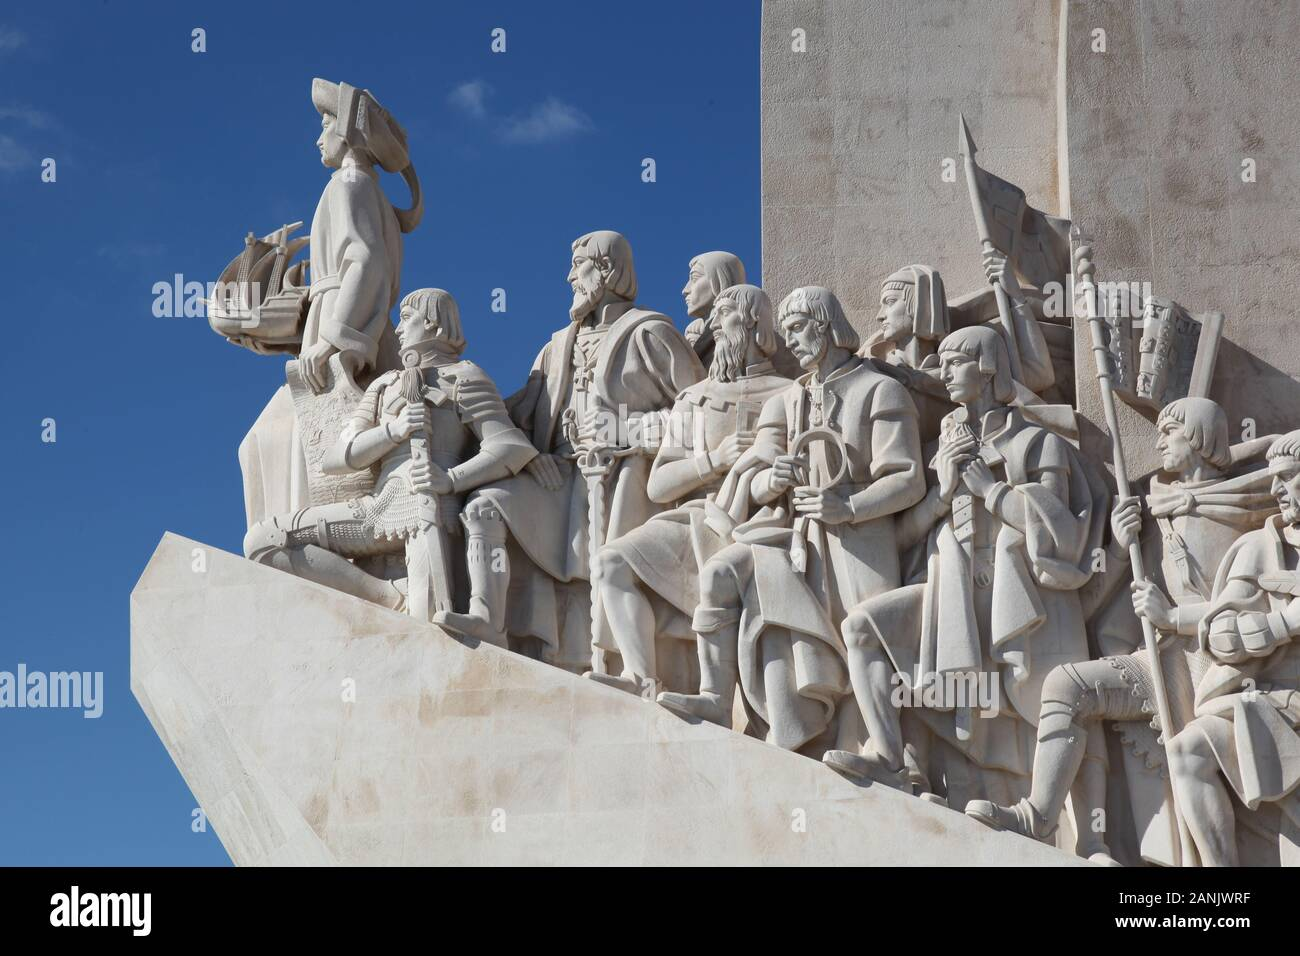 Eastern profile of the Padrao dos Descobrimentos, or Monument of the Discoveries, in Belem, Lisbon, Portugal Stock Photo